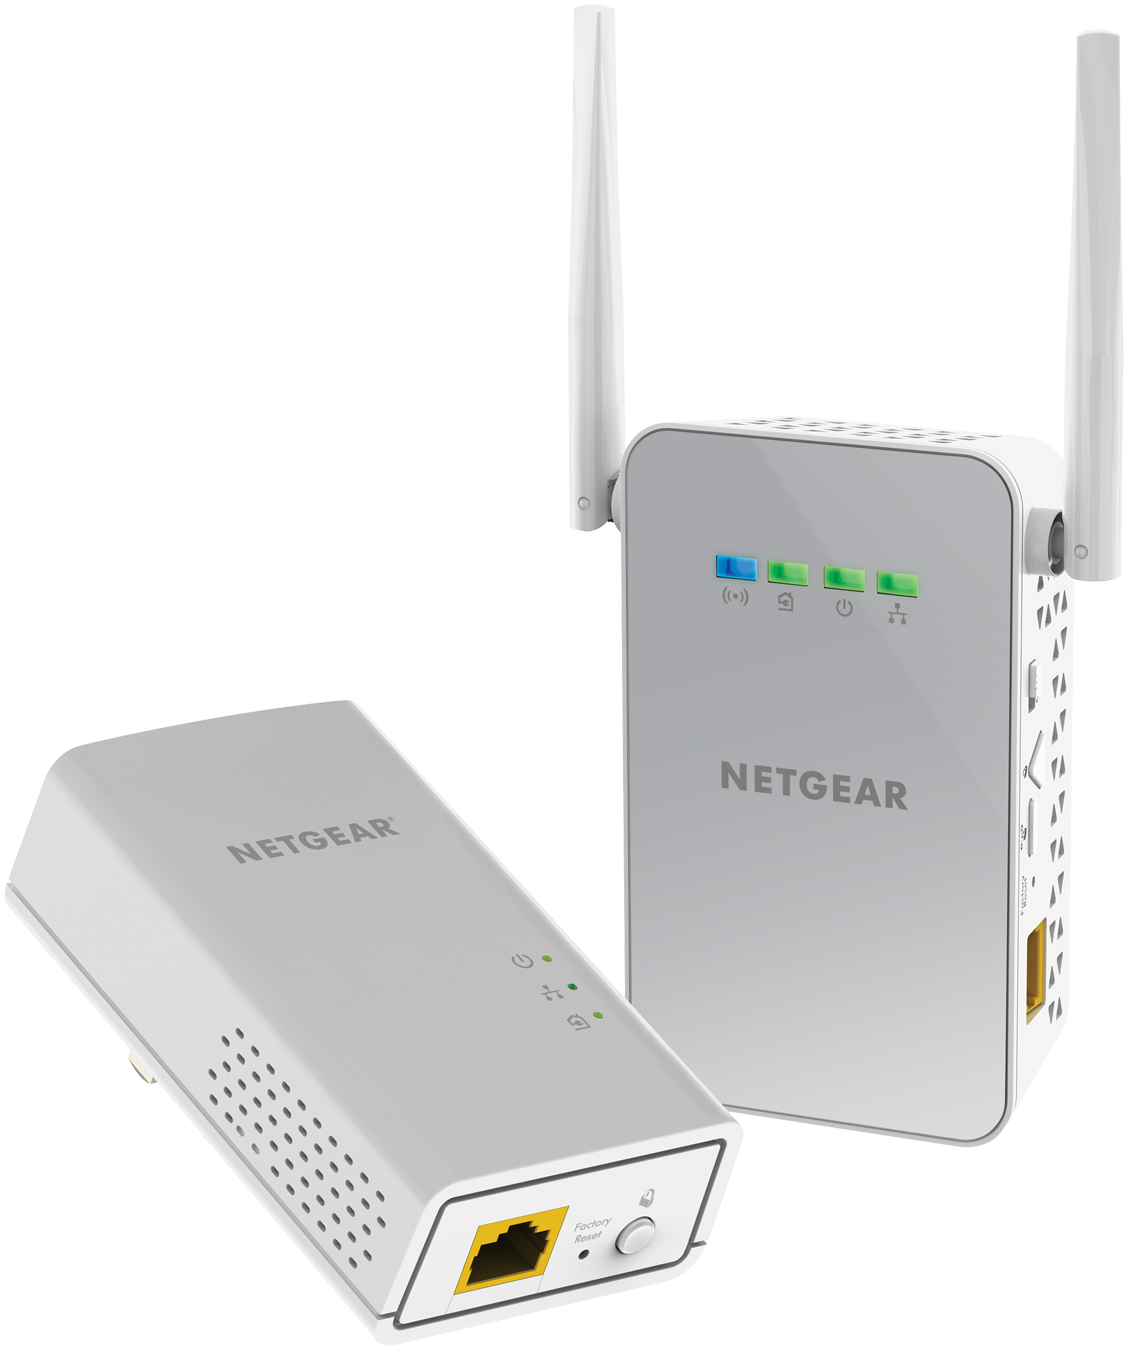 hight resolution of use your existing electrical wiring to extend your wifi internet access to any room in your house just plug the powerline adapter into your modem or router